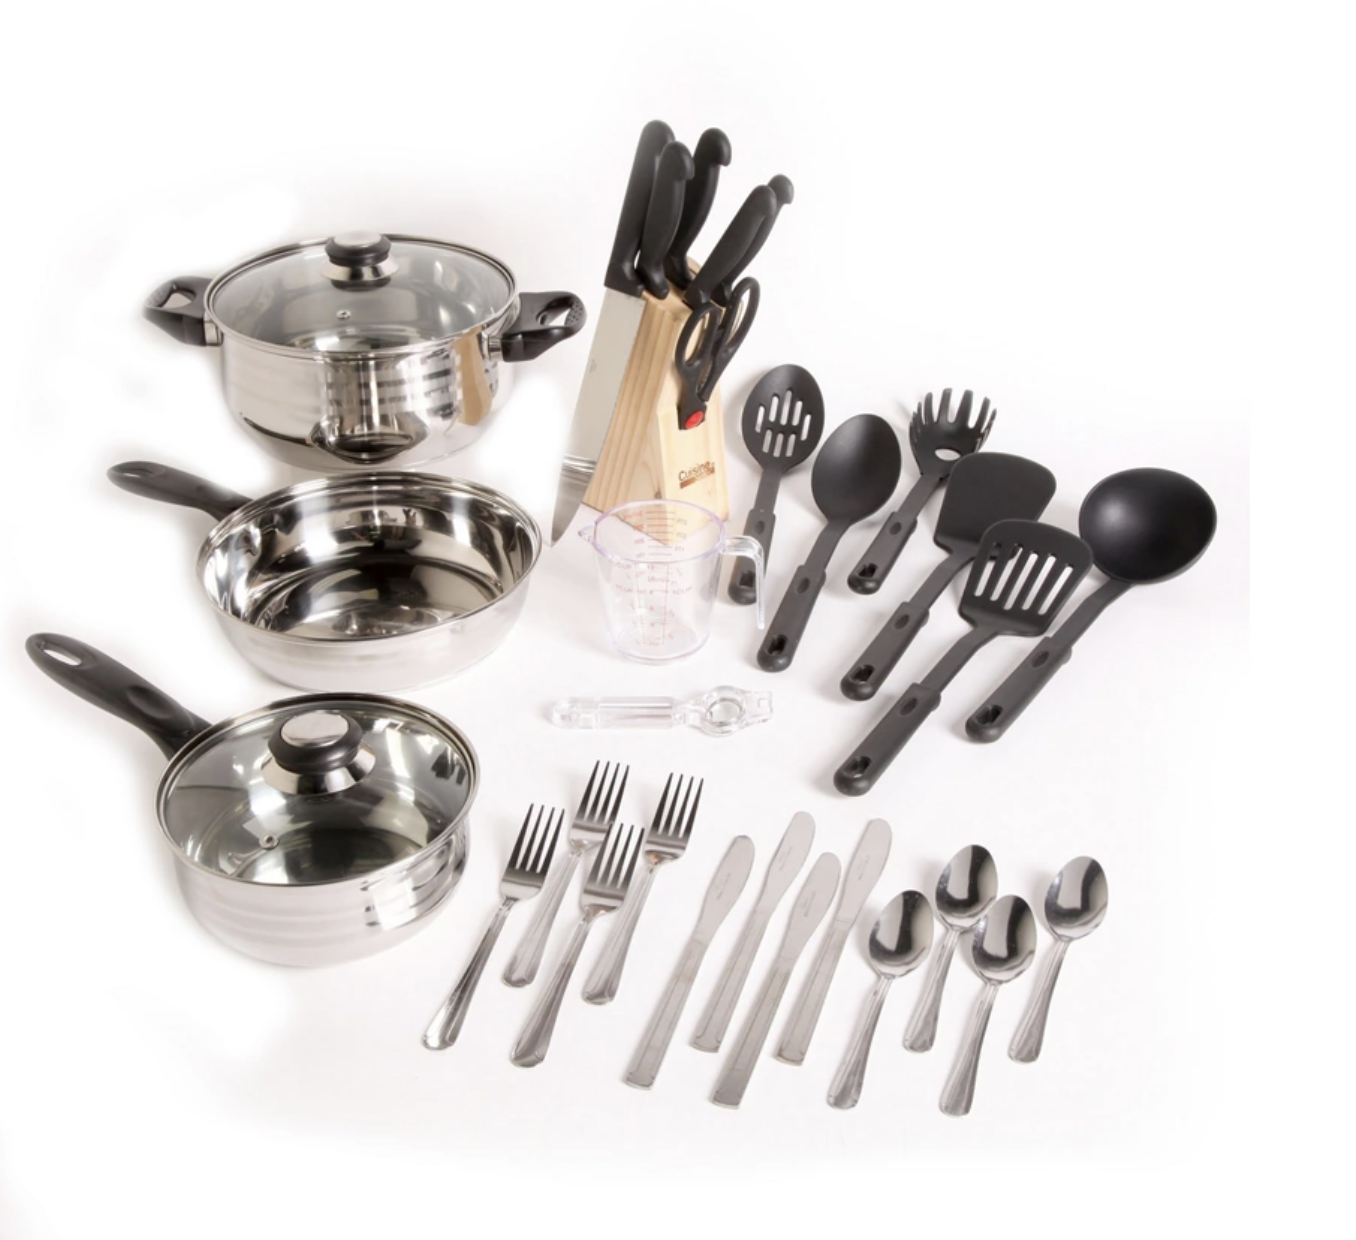 The 32-piece cookware set laid out on table